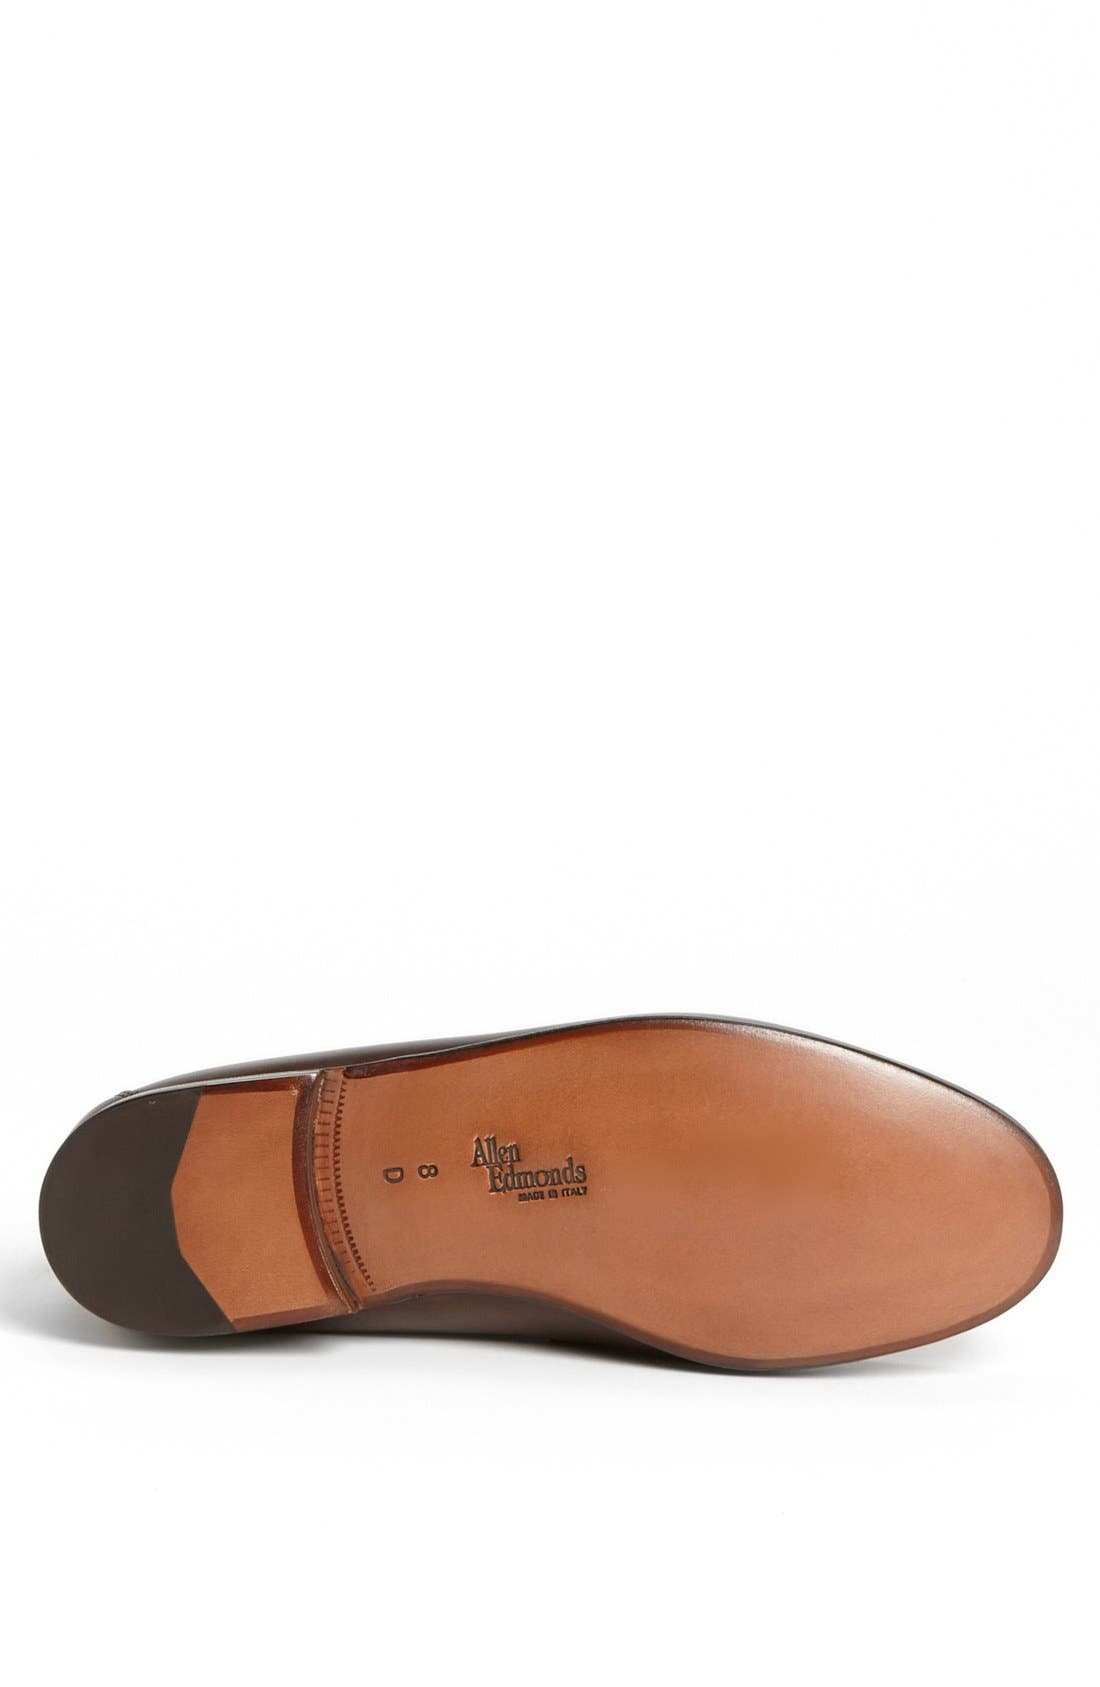 Alternate Image 4  - Allen Edmonds 'Urbino' Tassel Loafer (Men)